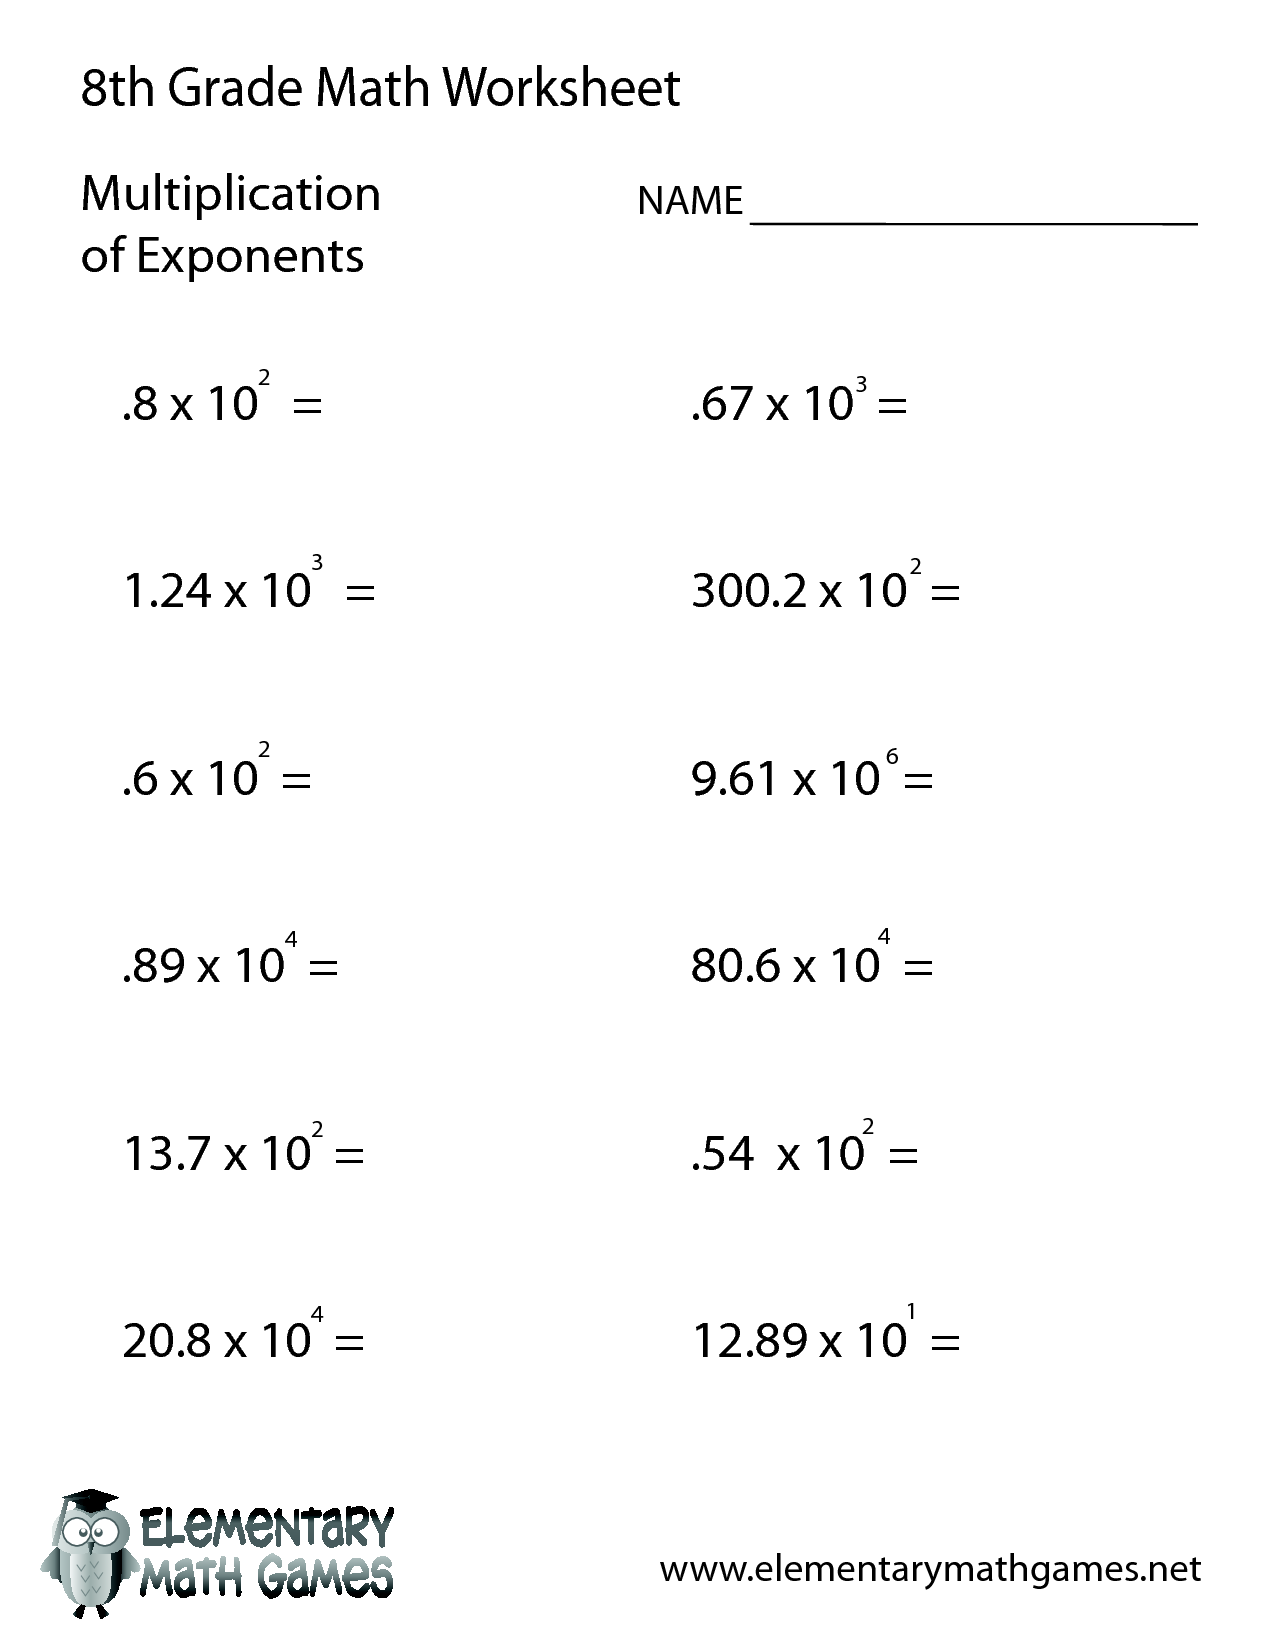 worksheet Grade 8 Math Worksheets class 8 maths worksheets 7th grade standard met exponents in 8th math free printable with answers spelling